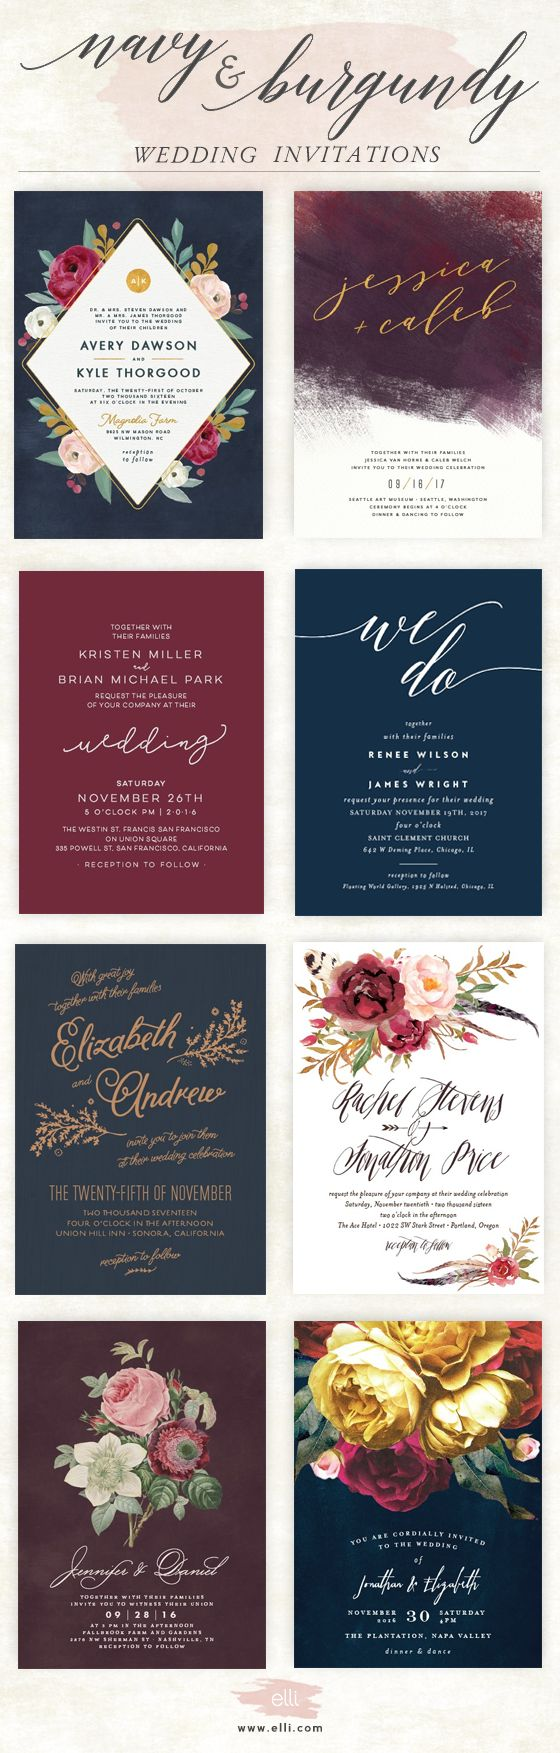 avery address labels wedding invitations%0A Gorgeous navy and burgundy wedding invitations